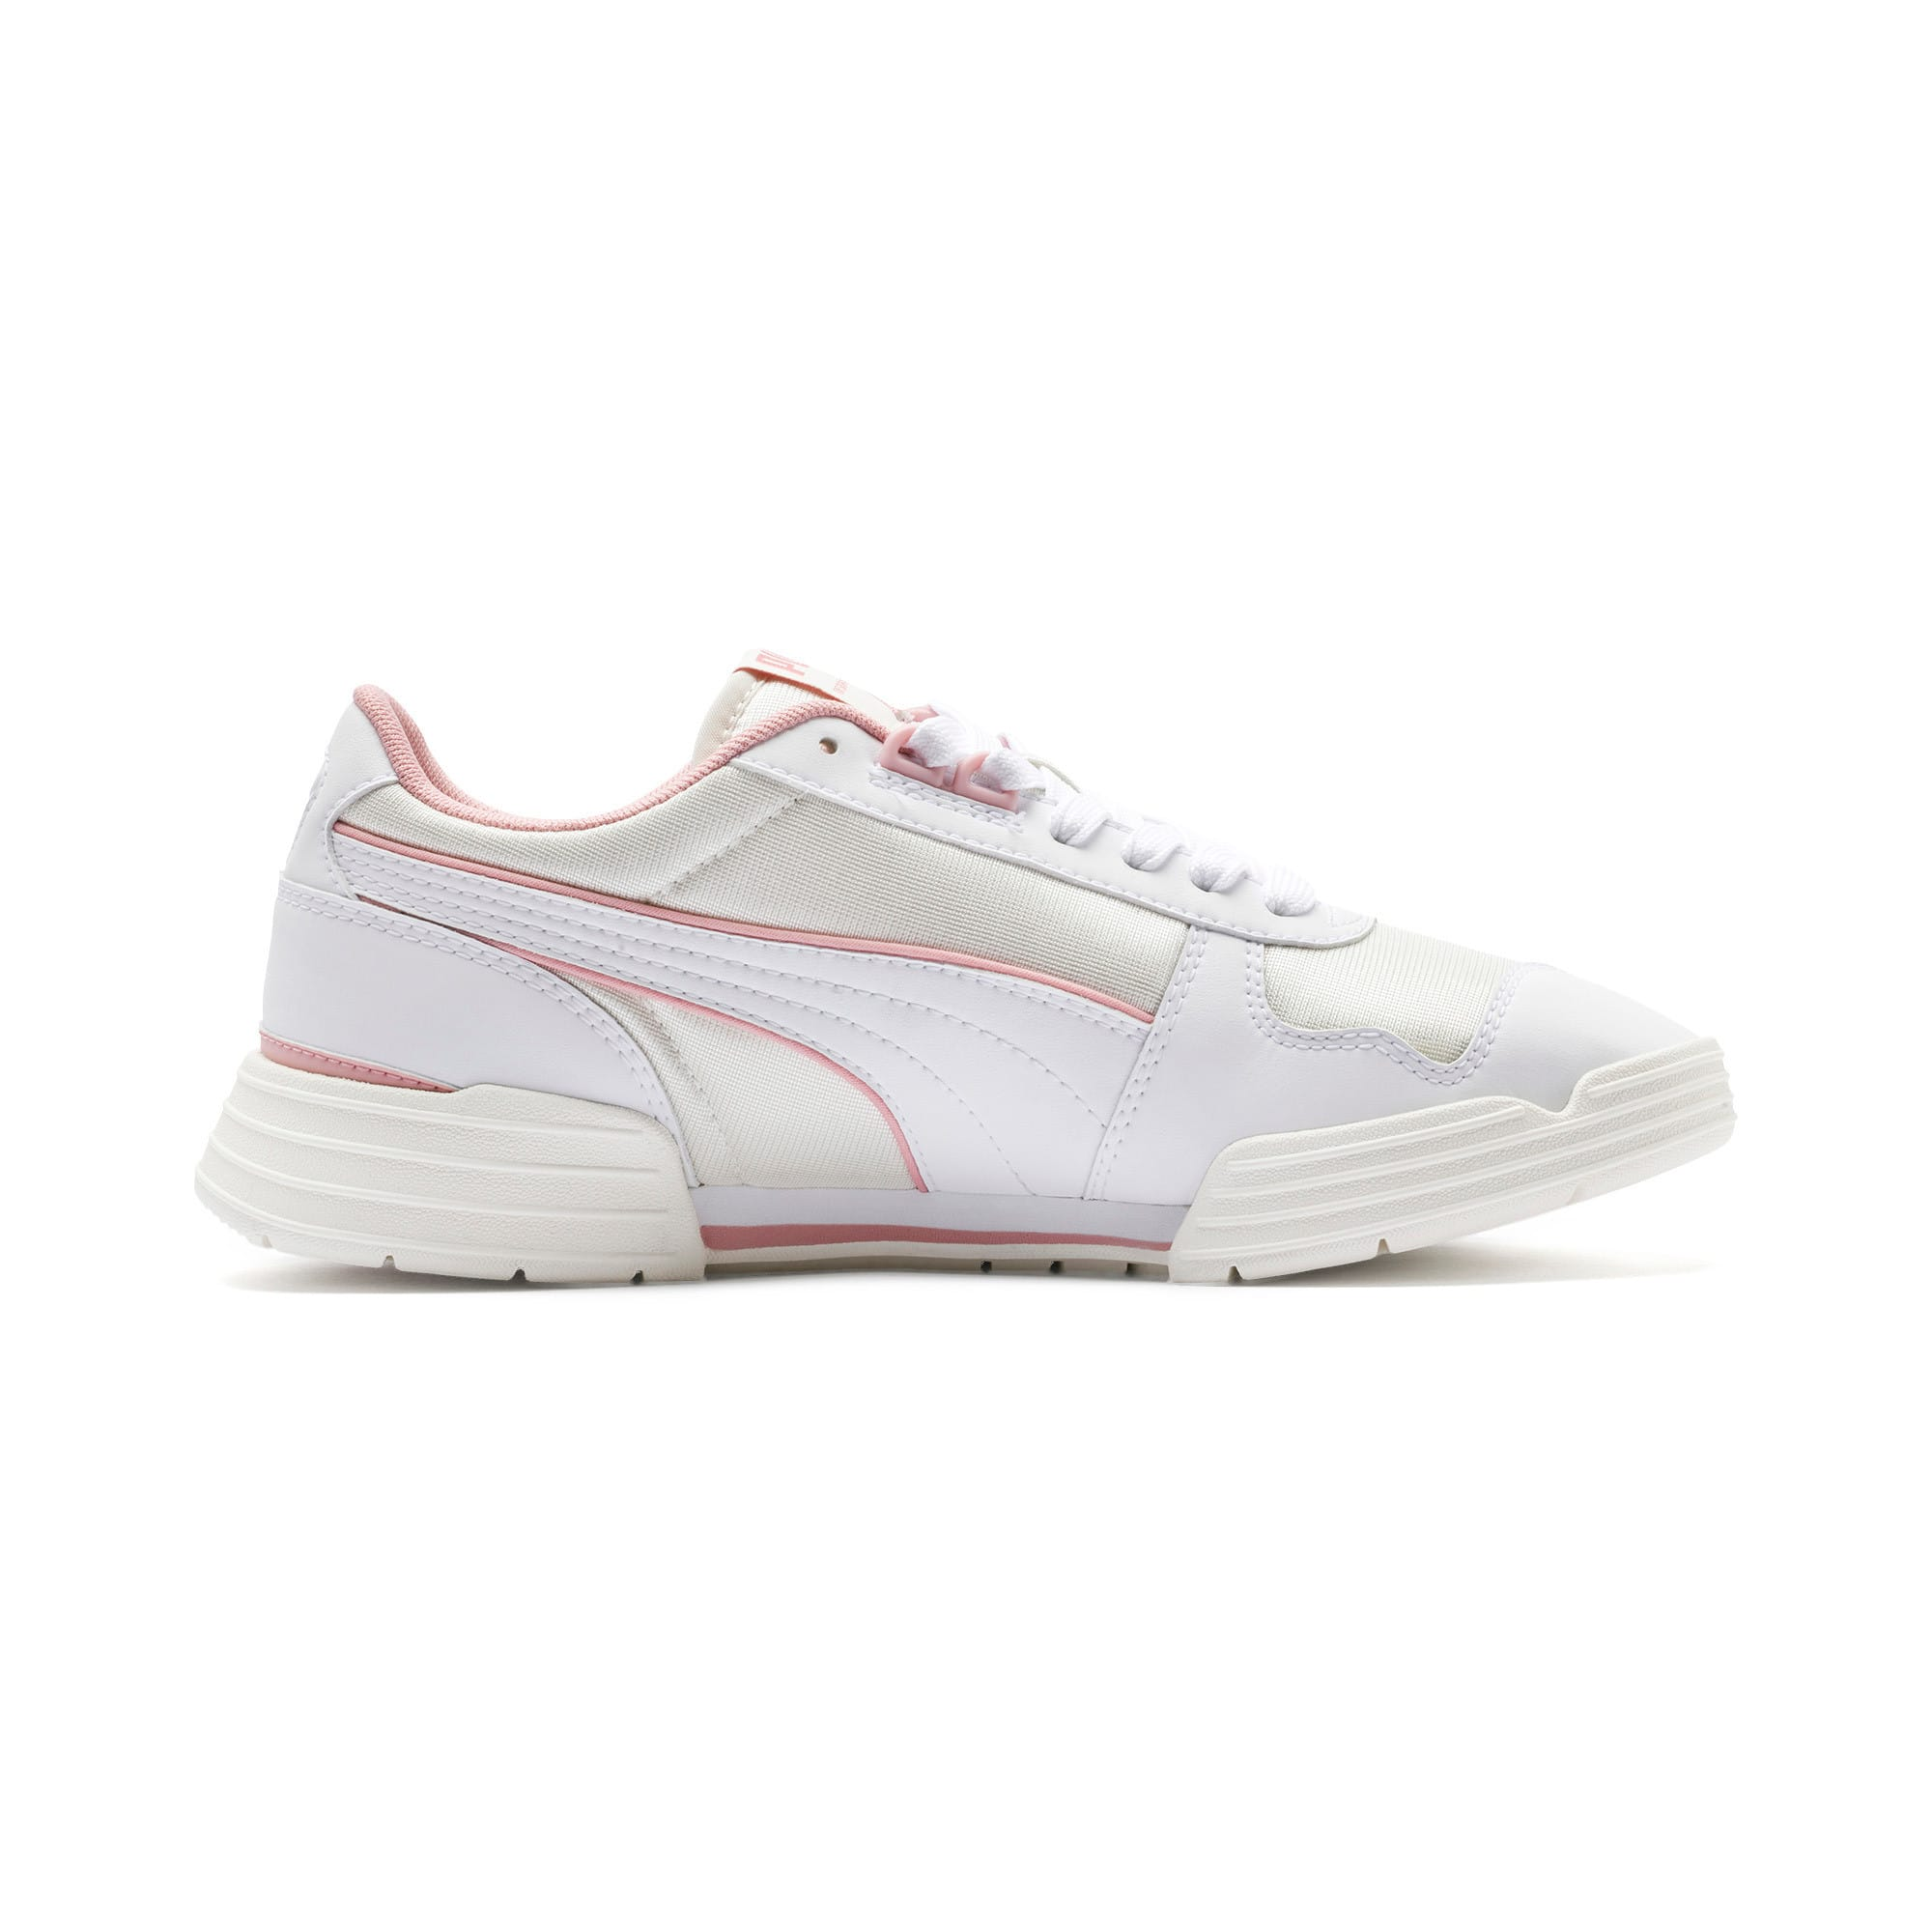 Thumbnail 7 of CGR Original Trainers, PWht-Bridal Rose-Marshmallow, medium-IND